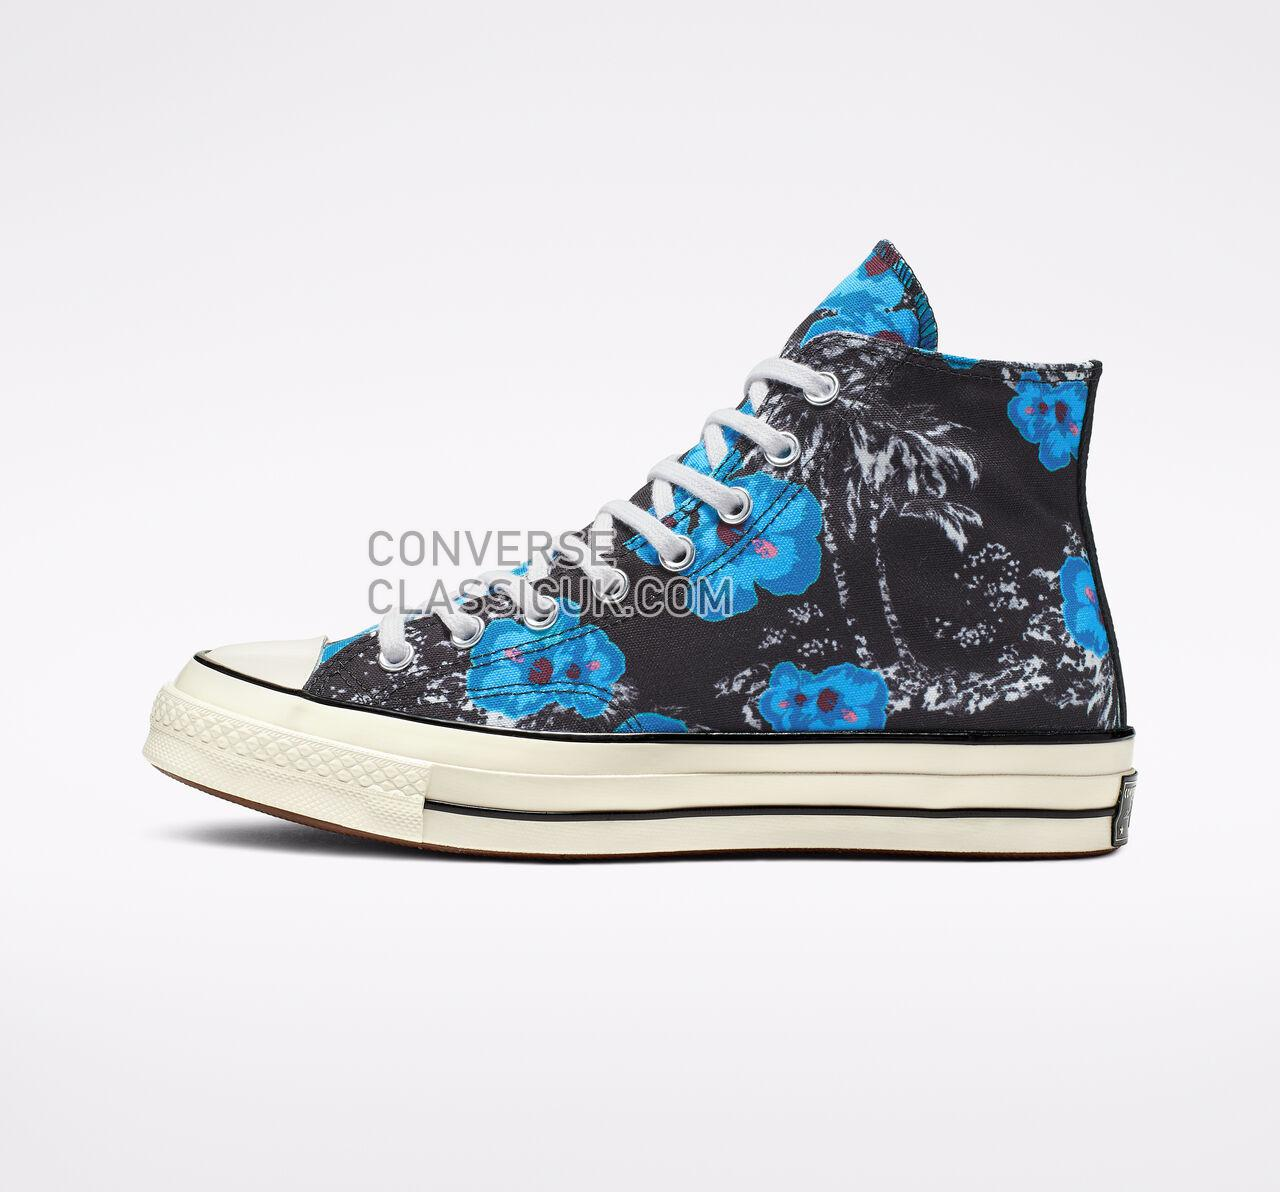 Converse Chuck 70 Paradise Floral High Top Mens Womens Unisex 164077C Black/Gnarly Blue/Racer Pink Shoes